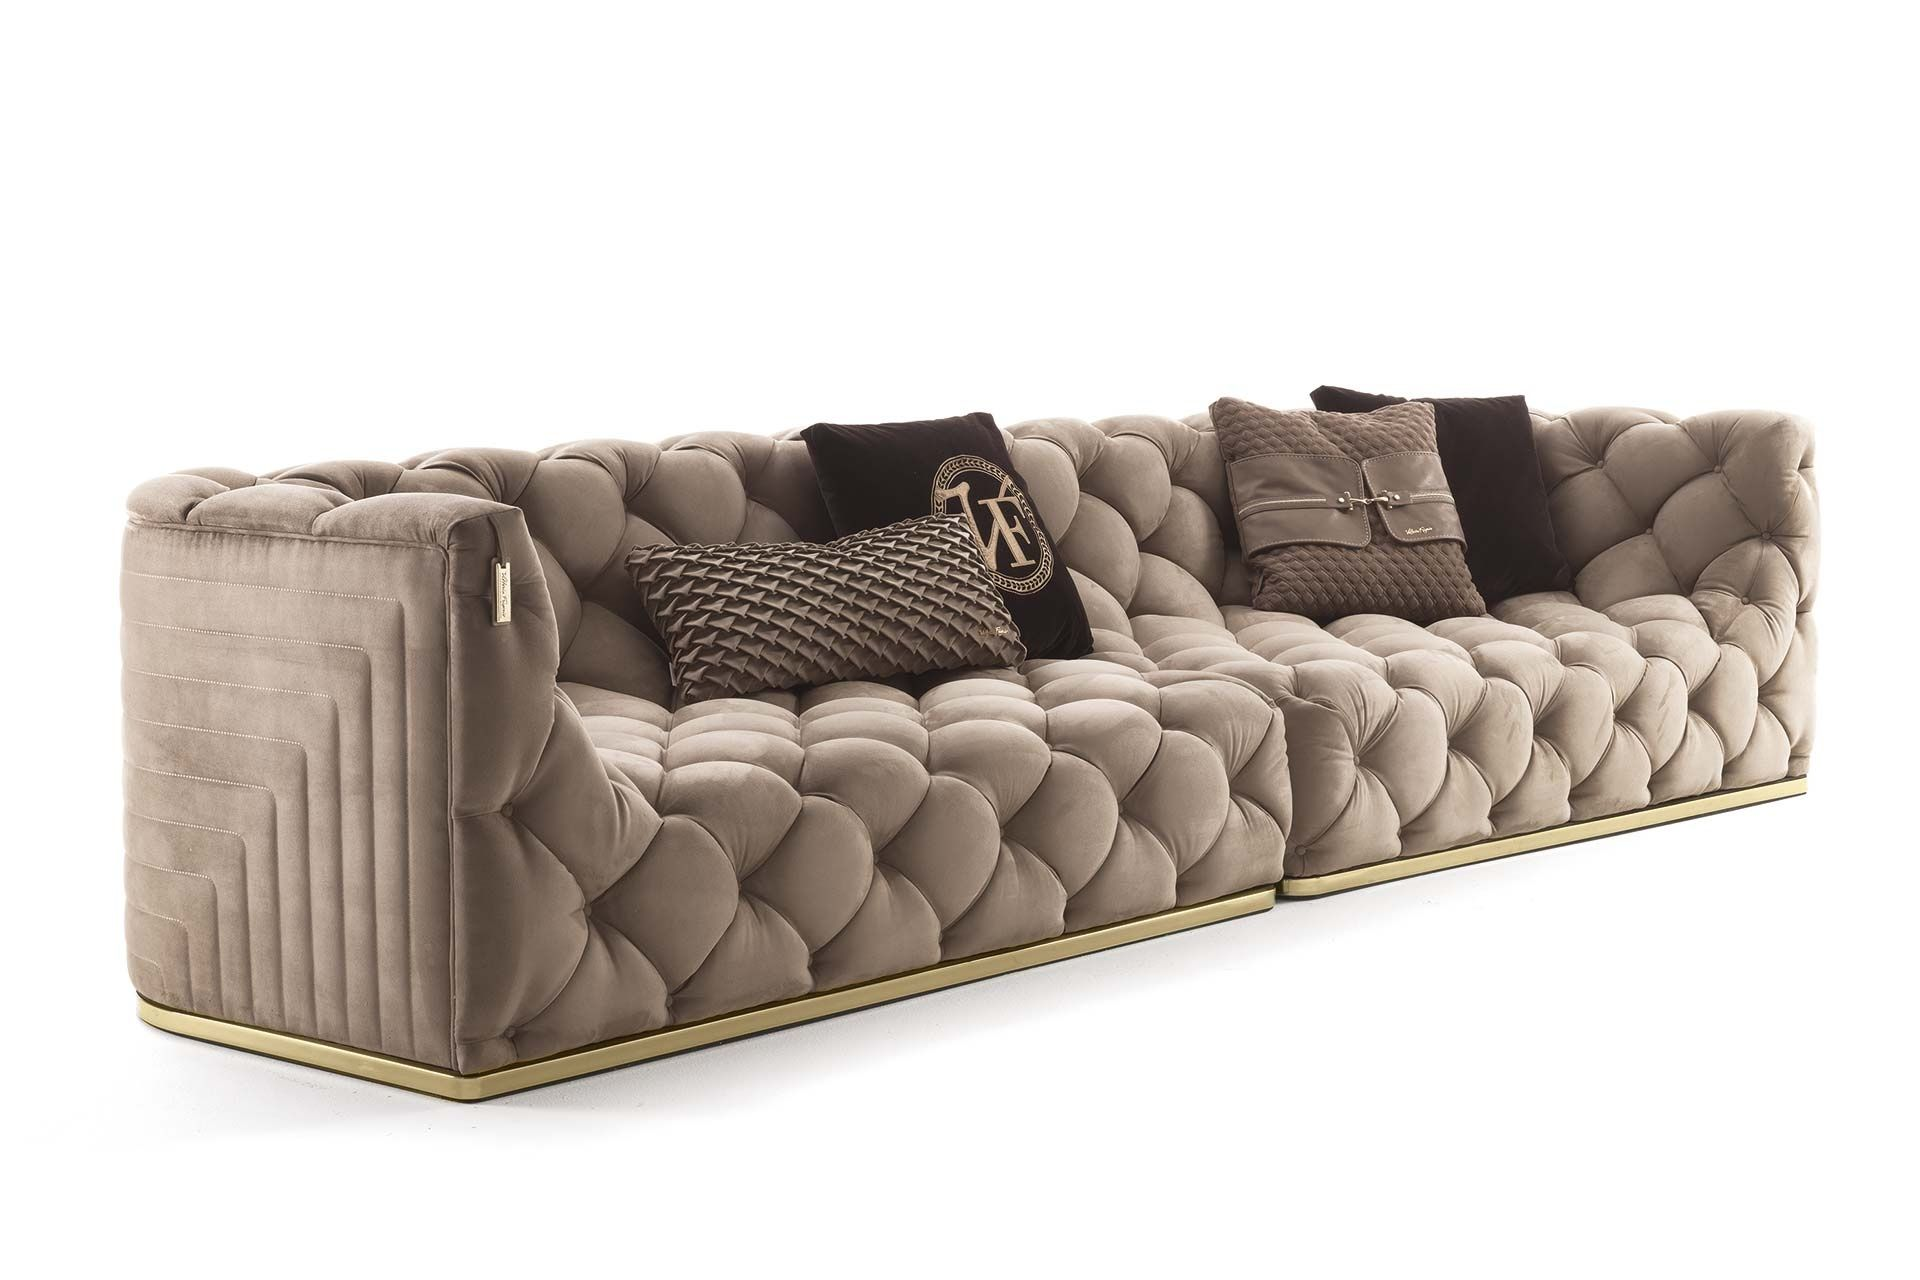 e4e82cdd6f1 An example of all-round button tufted upholstery  a finely original  interpretation of an ancient craft .